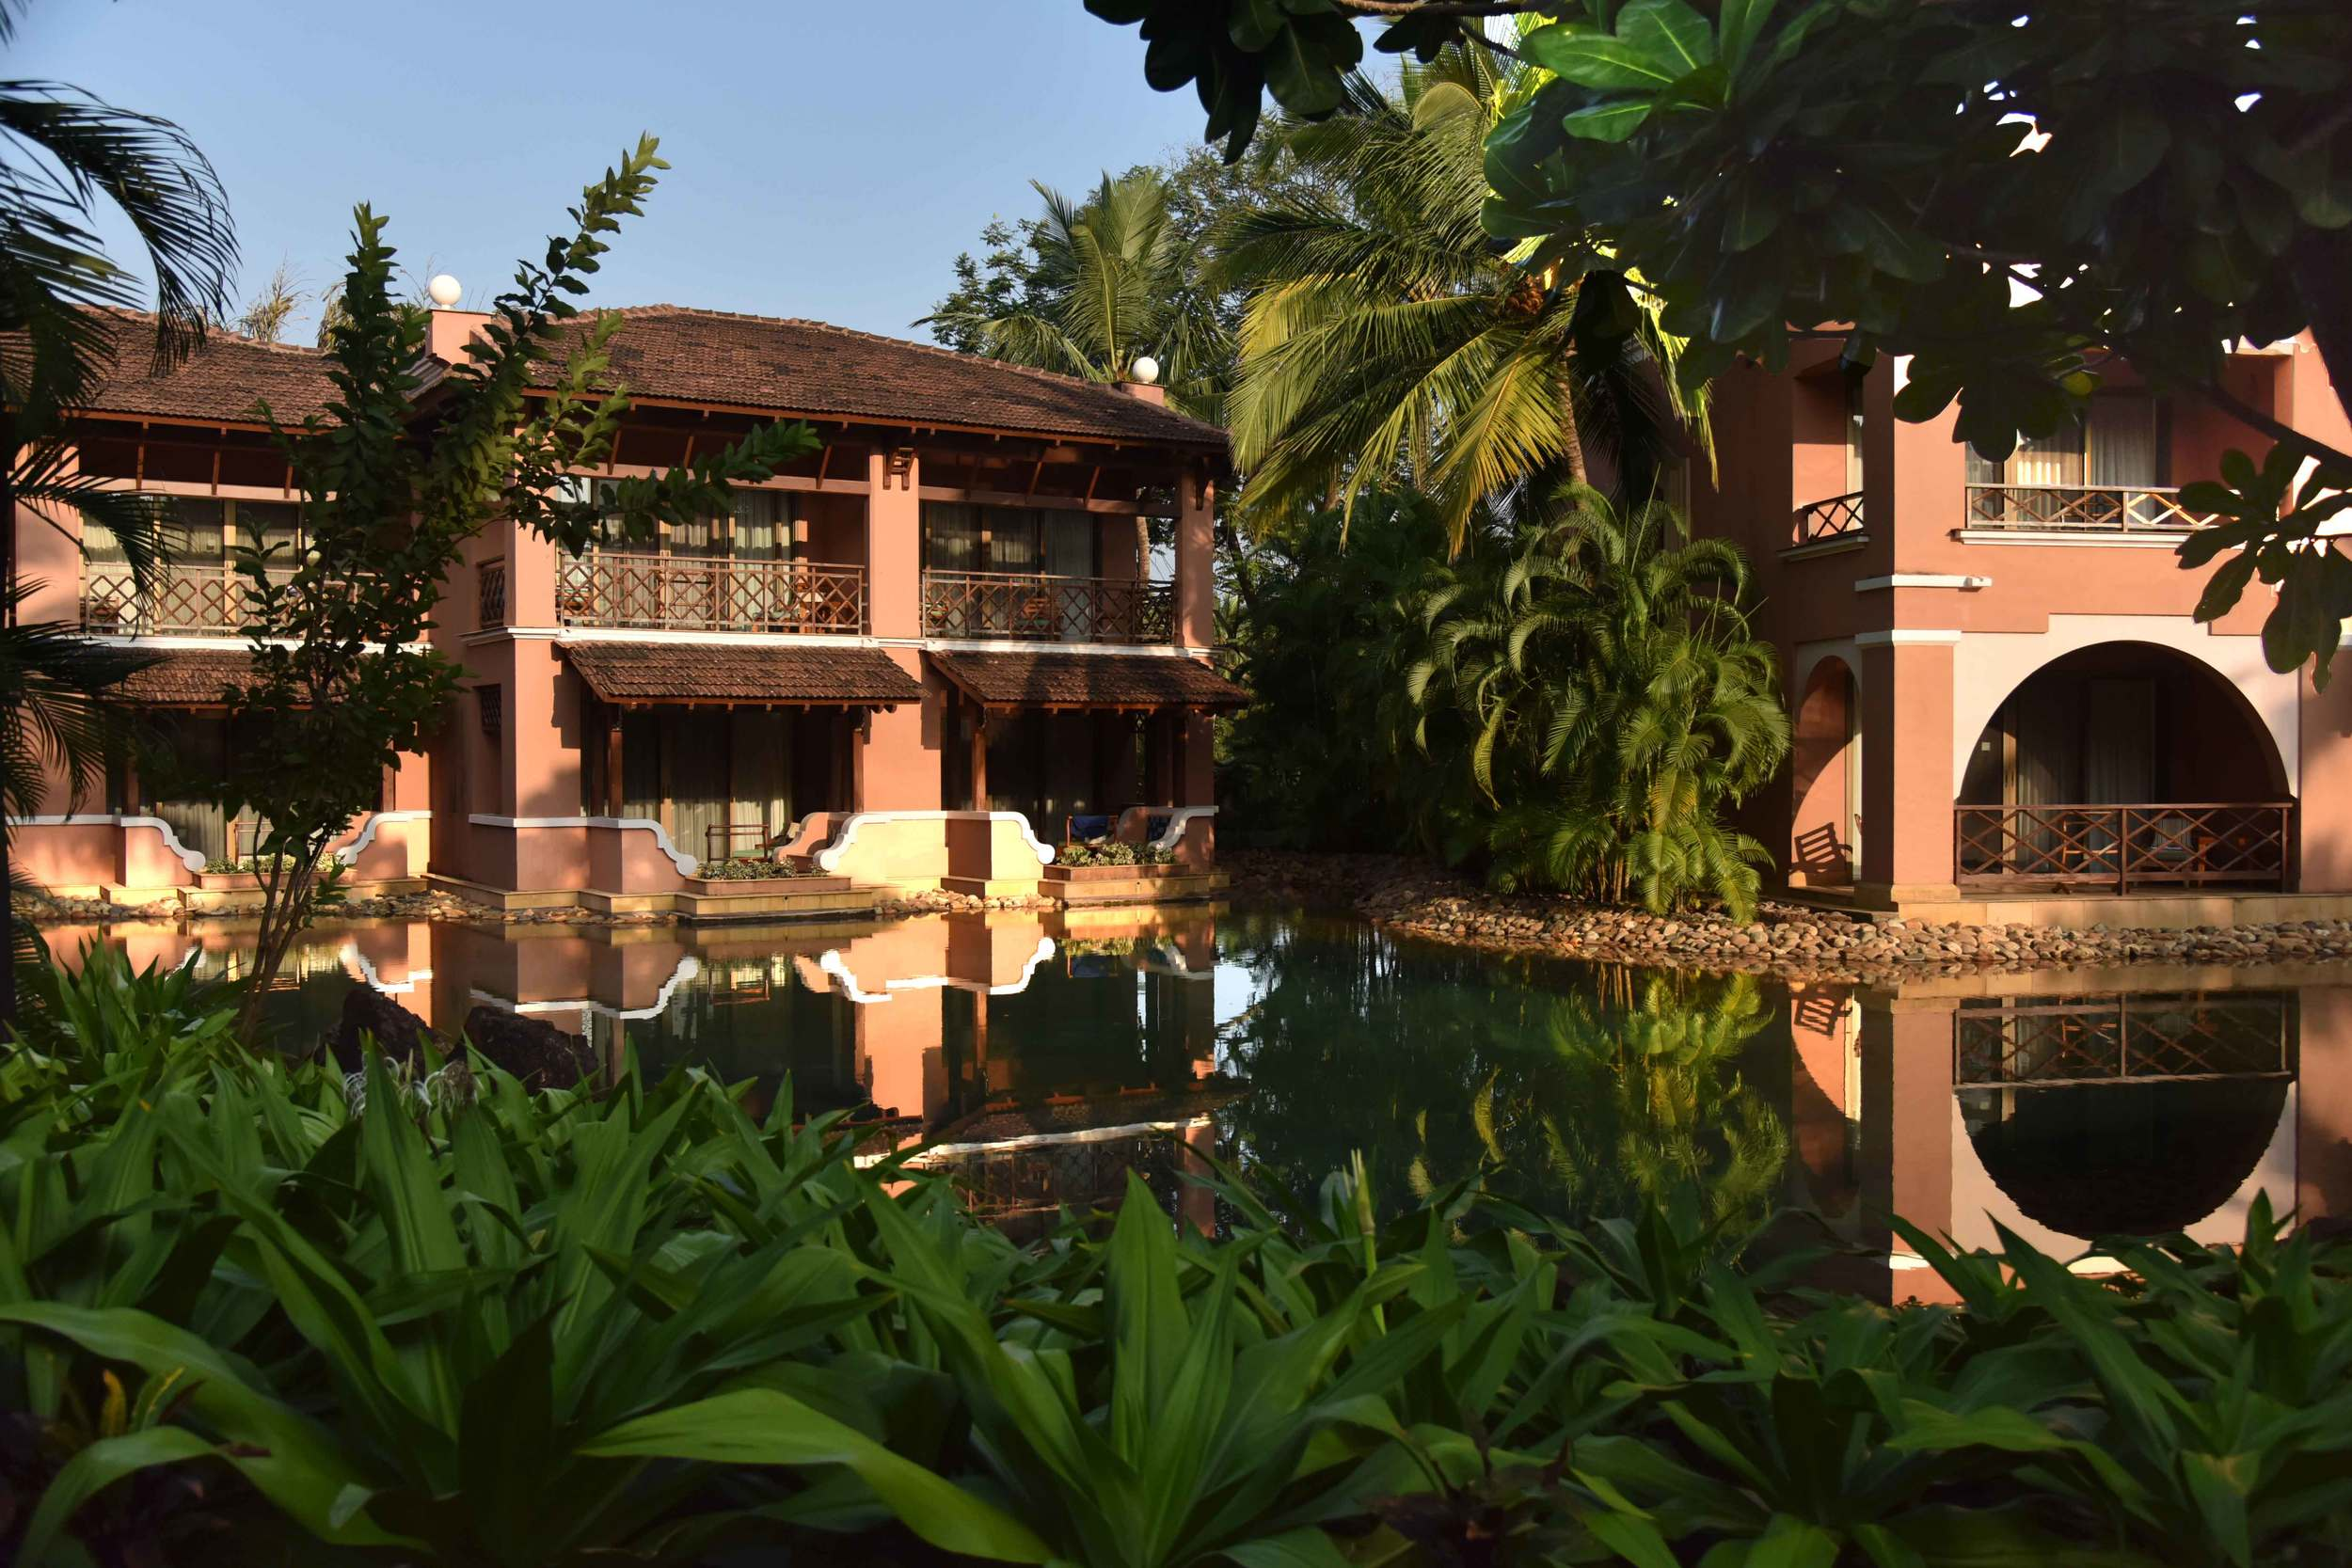 Rooms with a view, Park Hyatt Hotel, Goa, image©sourcingstyle.com.